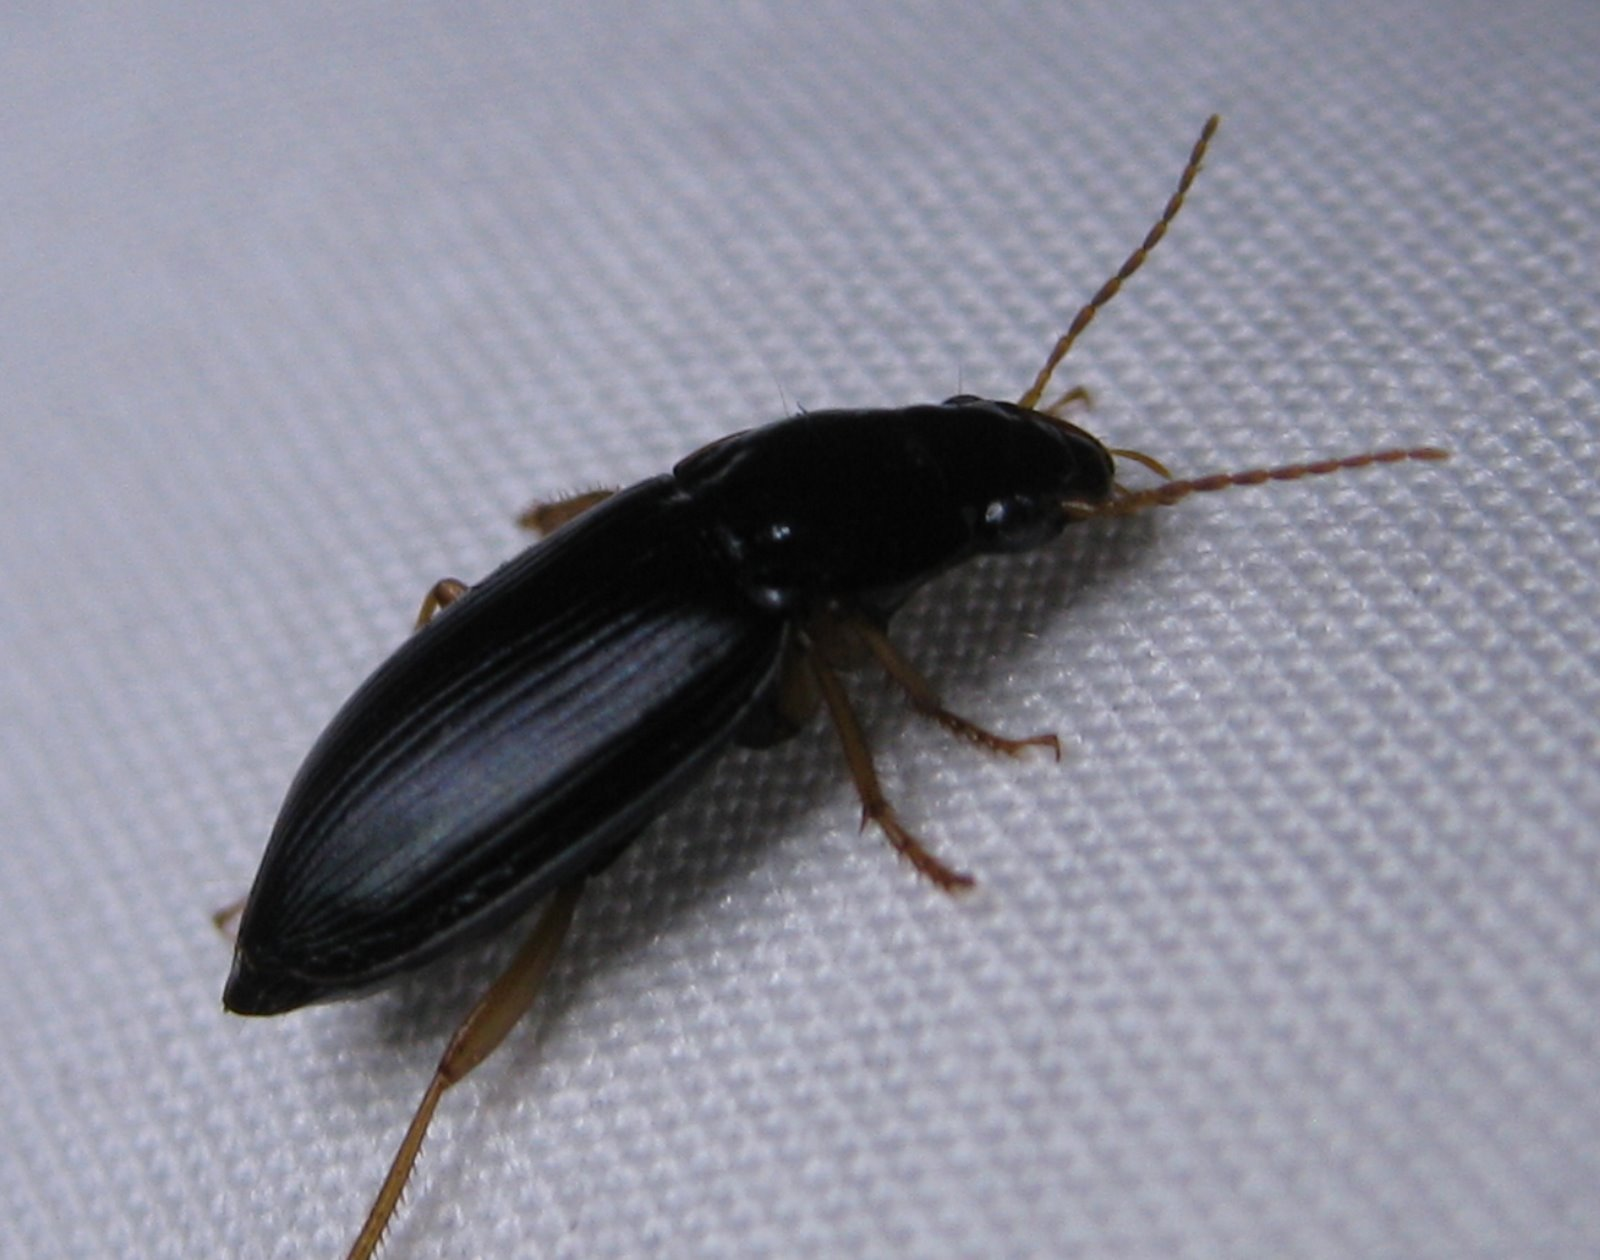 Small Black Flying Bugs In Bedroom Cukjatidesign Com. Little Black Flying Bugs In Bedroom   Bedroom Style Ideas